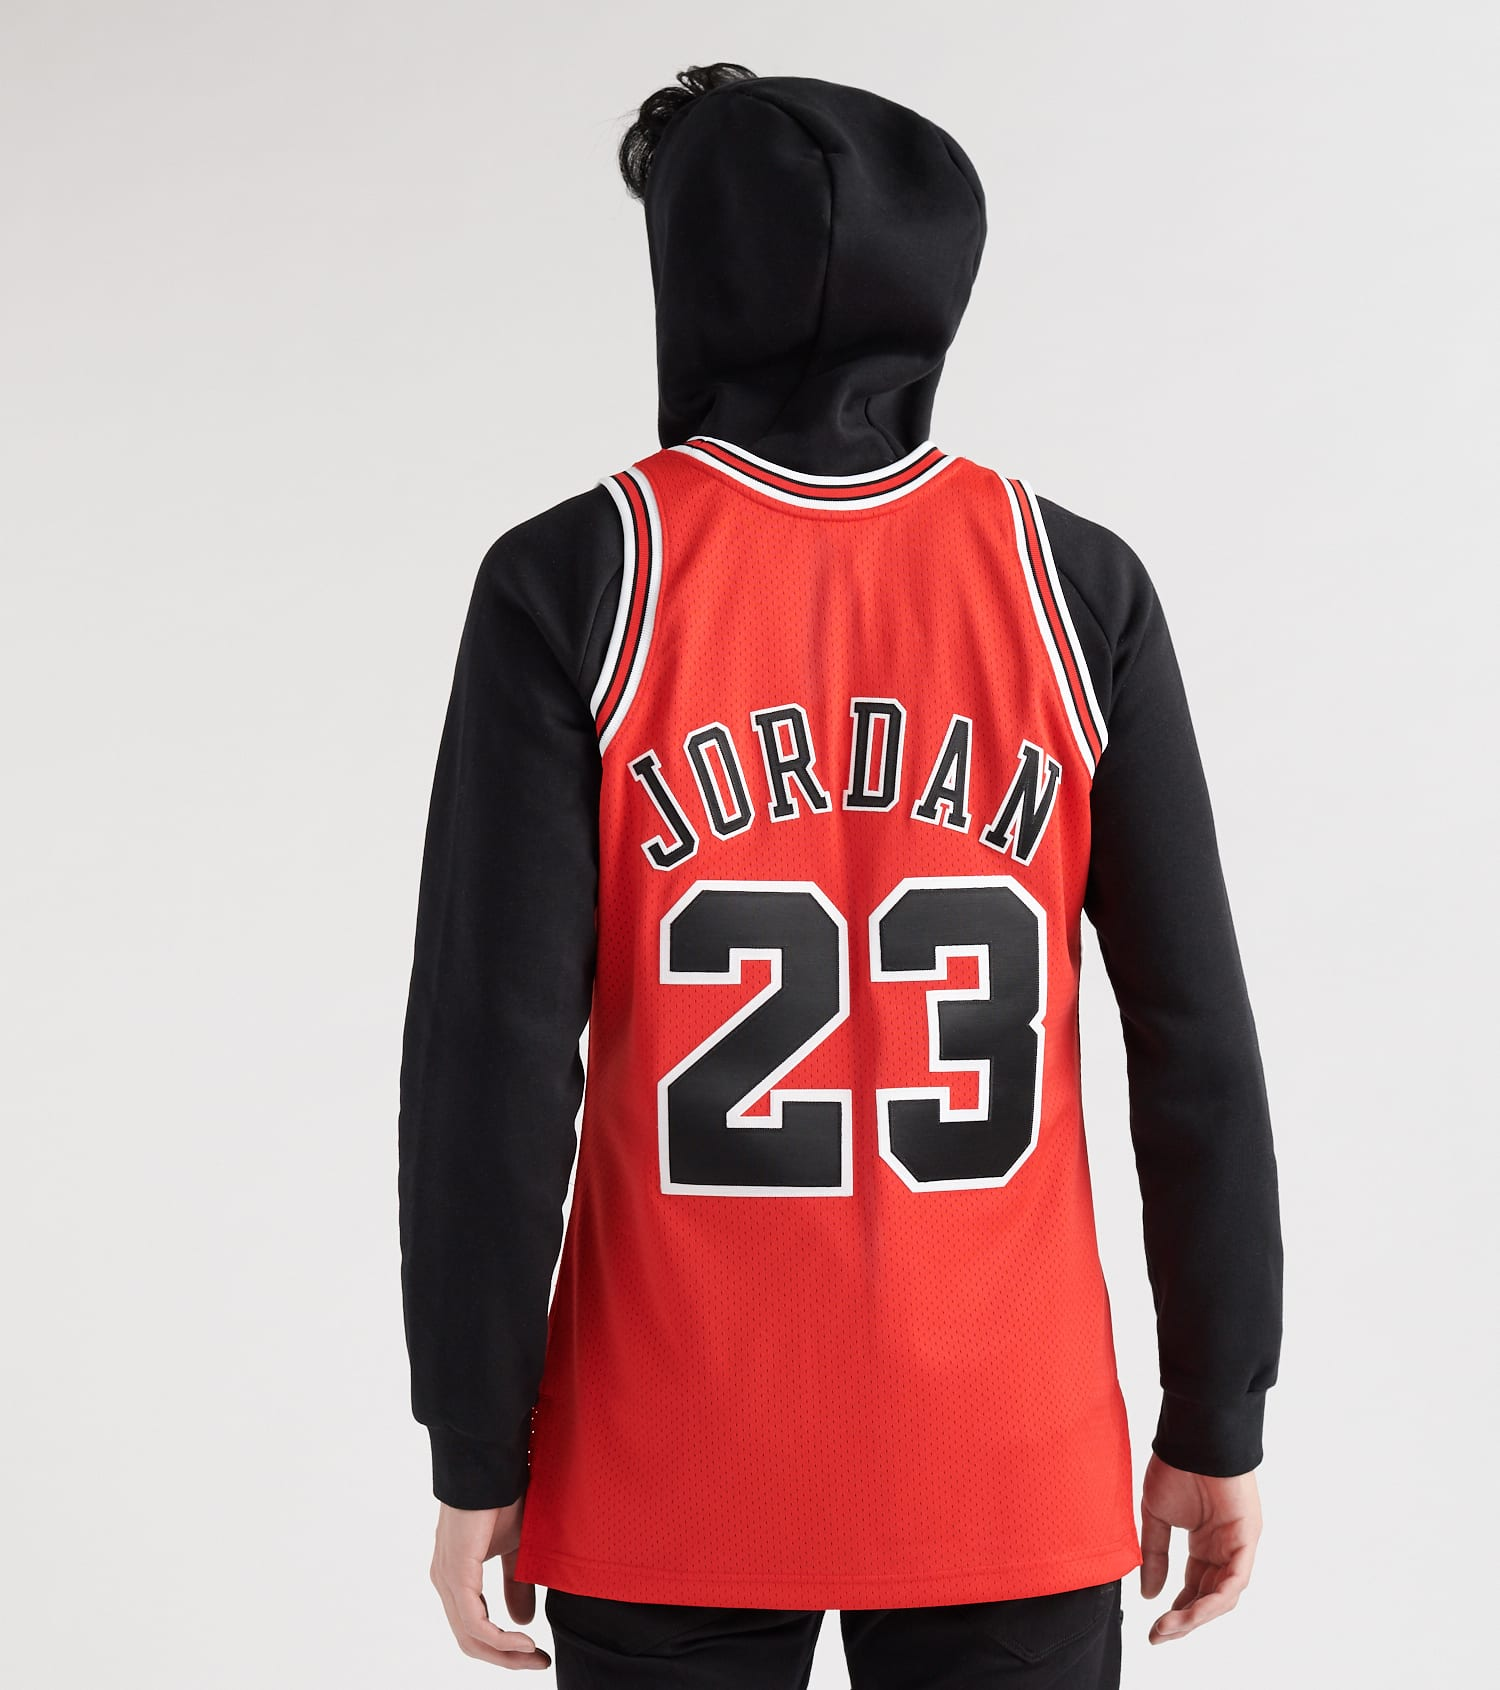 on sale d2fd1 96102 Chicago Bulls Michael Jordan Jersey